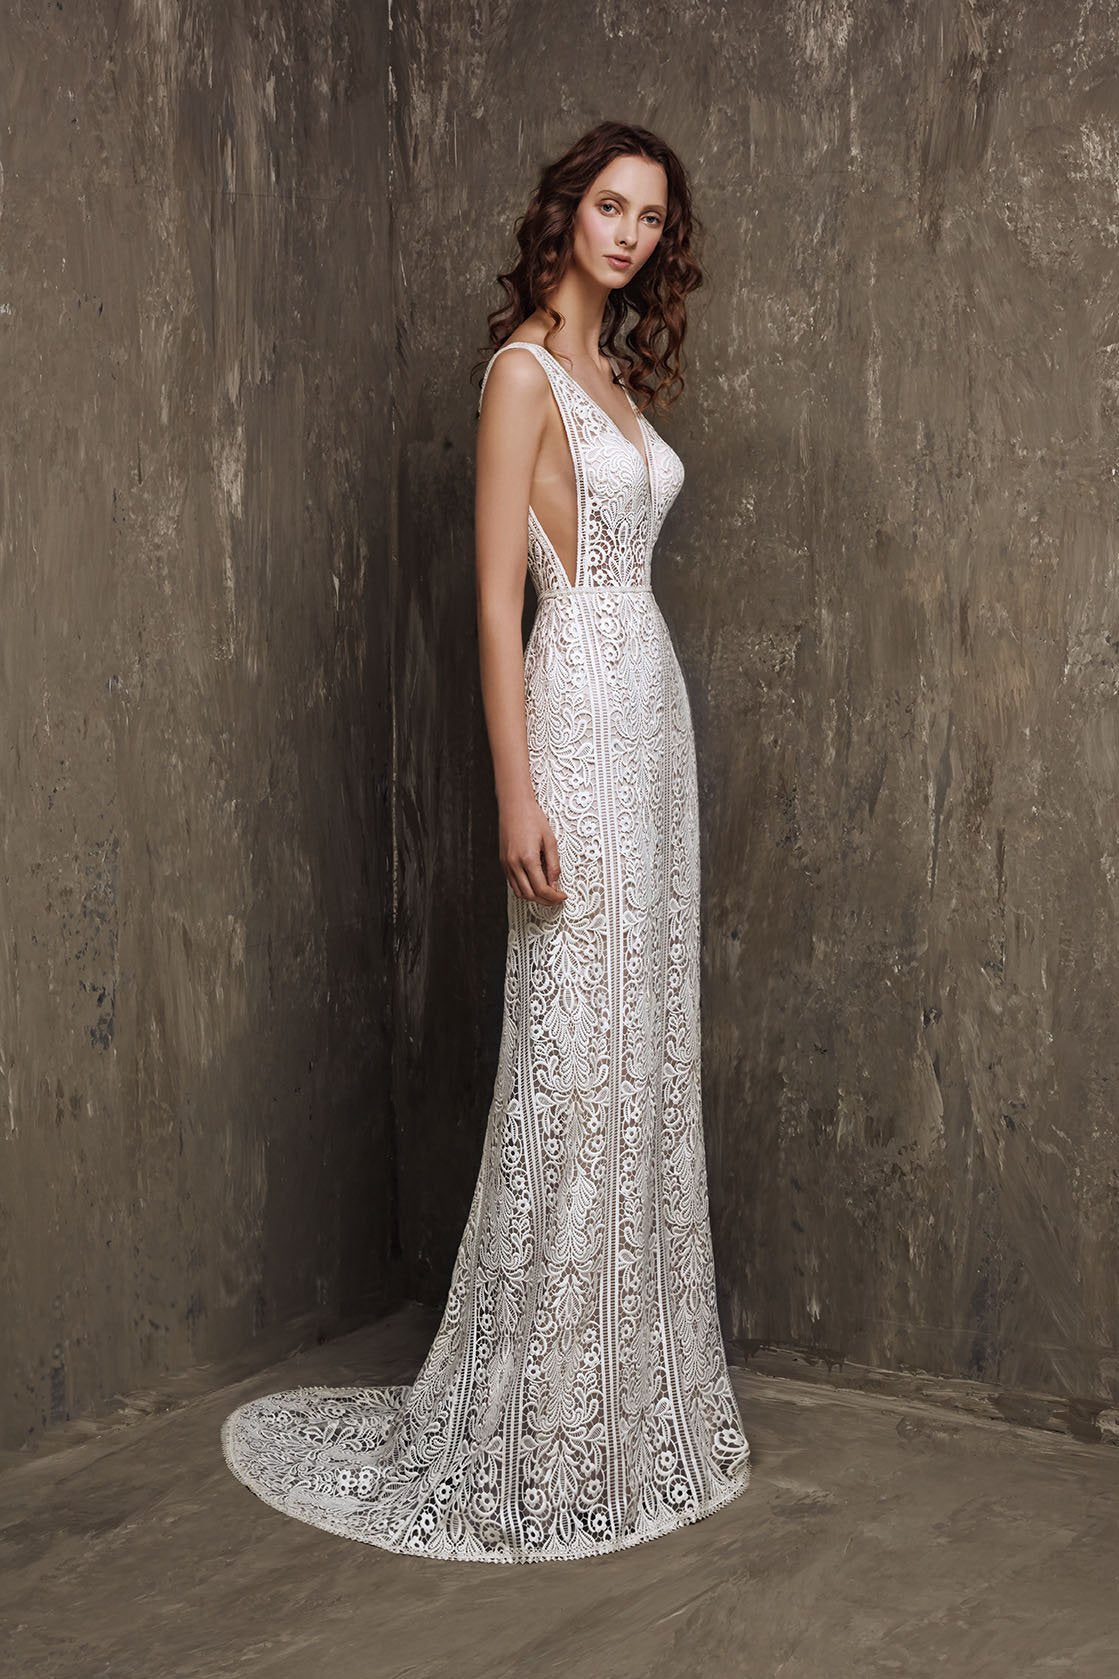 Cybel - Sample Gown, Online Sample Sale, Chic Nostalgia - Sample Gown - Eternal Bridal